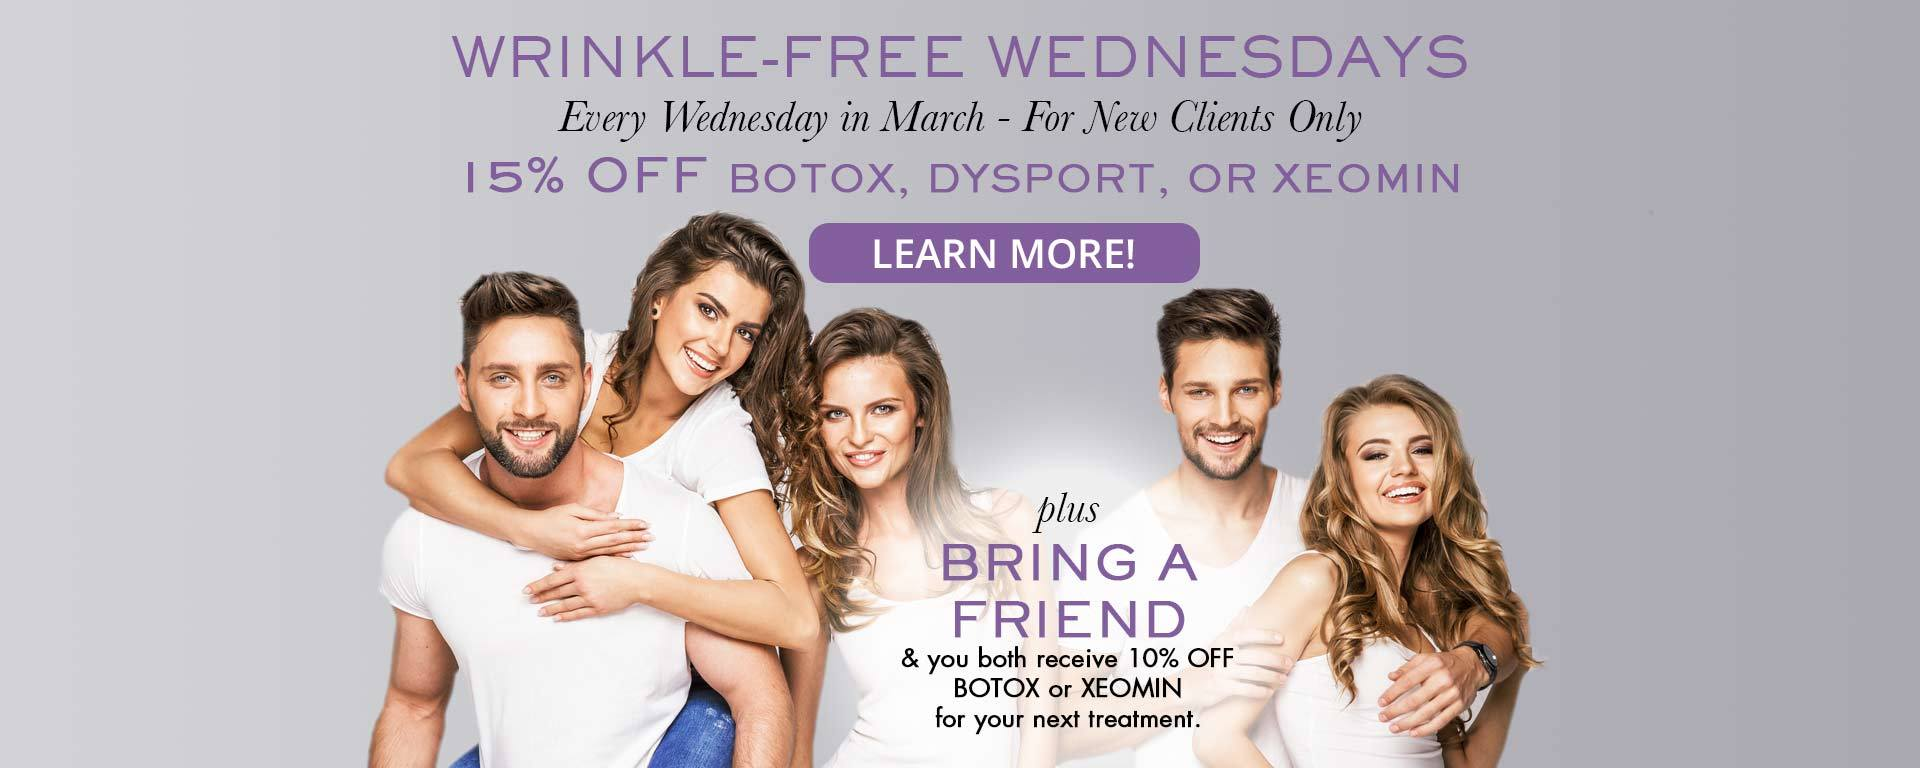 Wrinkle-Free Wednesdays. Every Wednesday in March - For New Clients Only. 15% OFF Botox, Dysport, or Xeomin. Plus: Bring a Friend and you both receive 10% OFF BOTOX or XEOMIN for your next treatment!